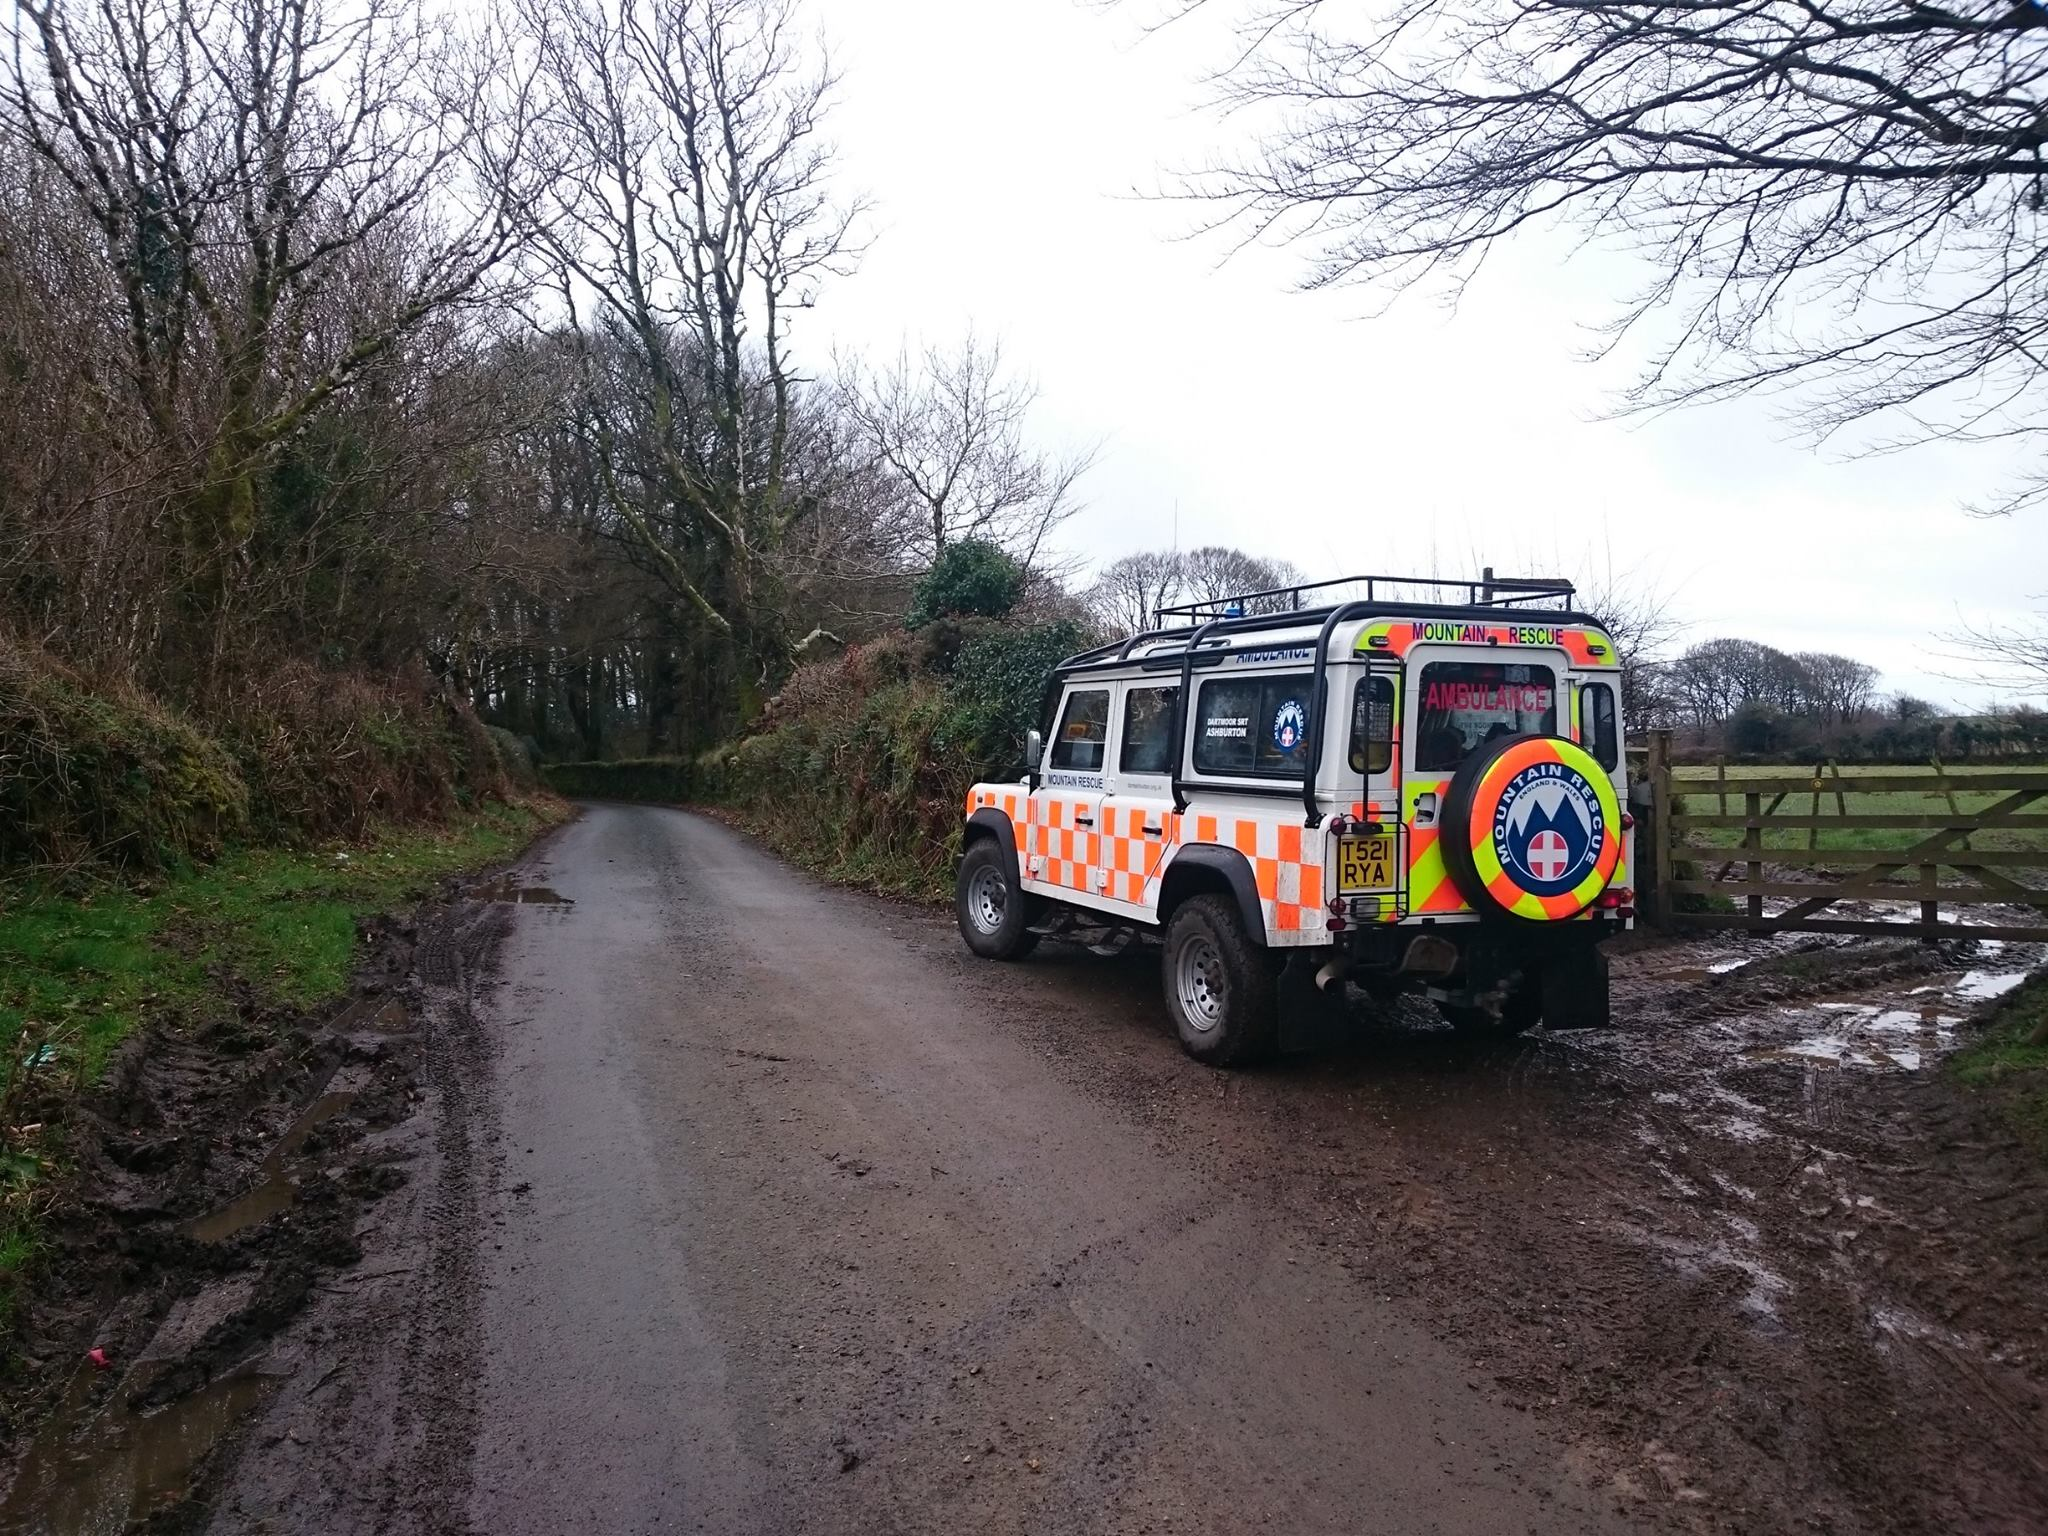 Team members deployed to East Devon in search for teenager.